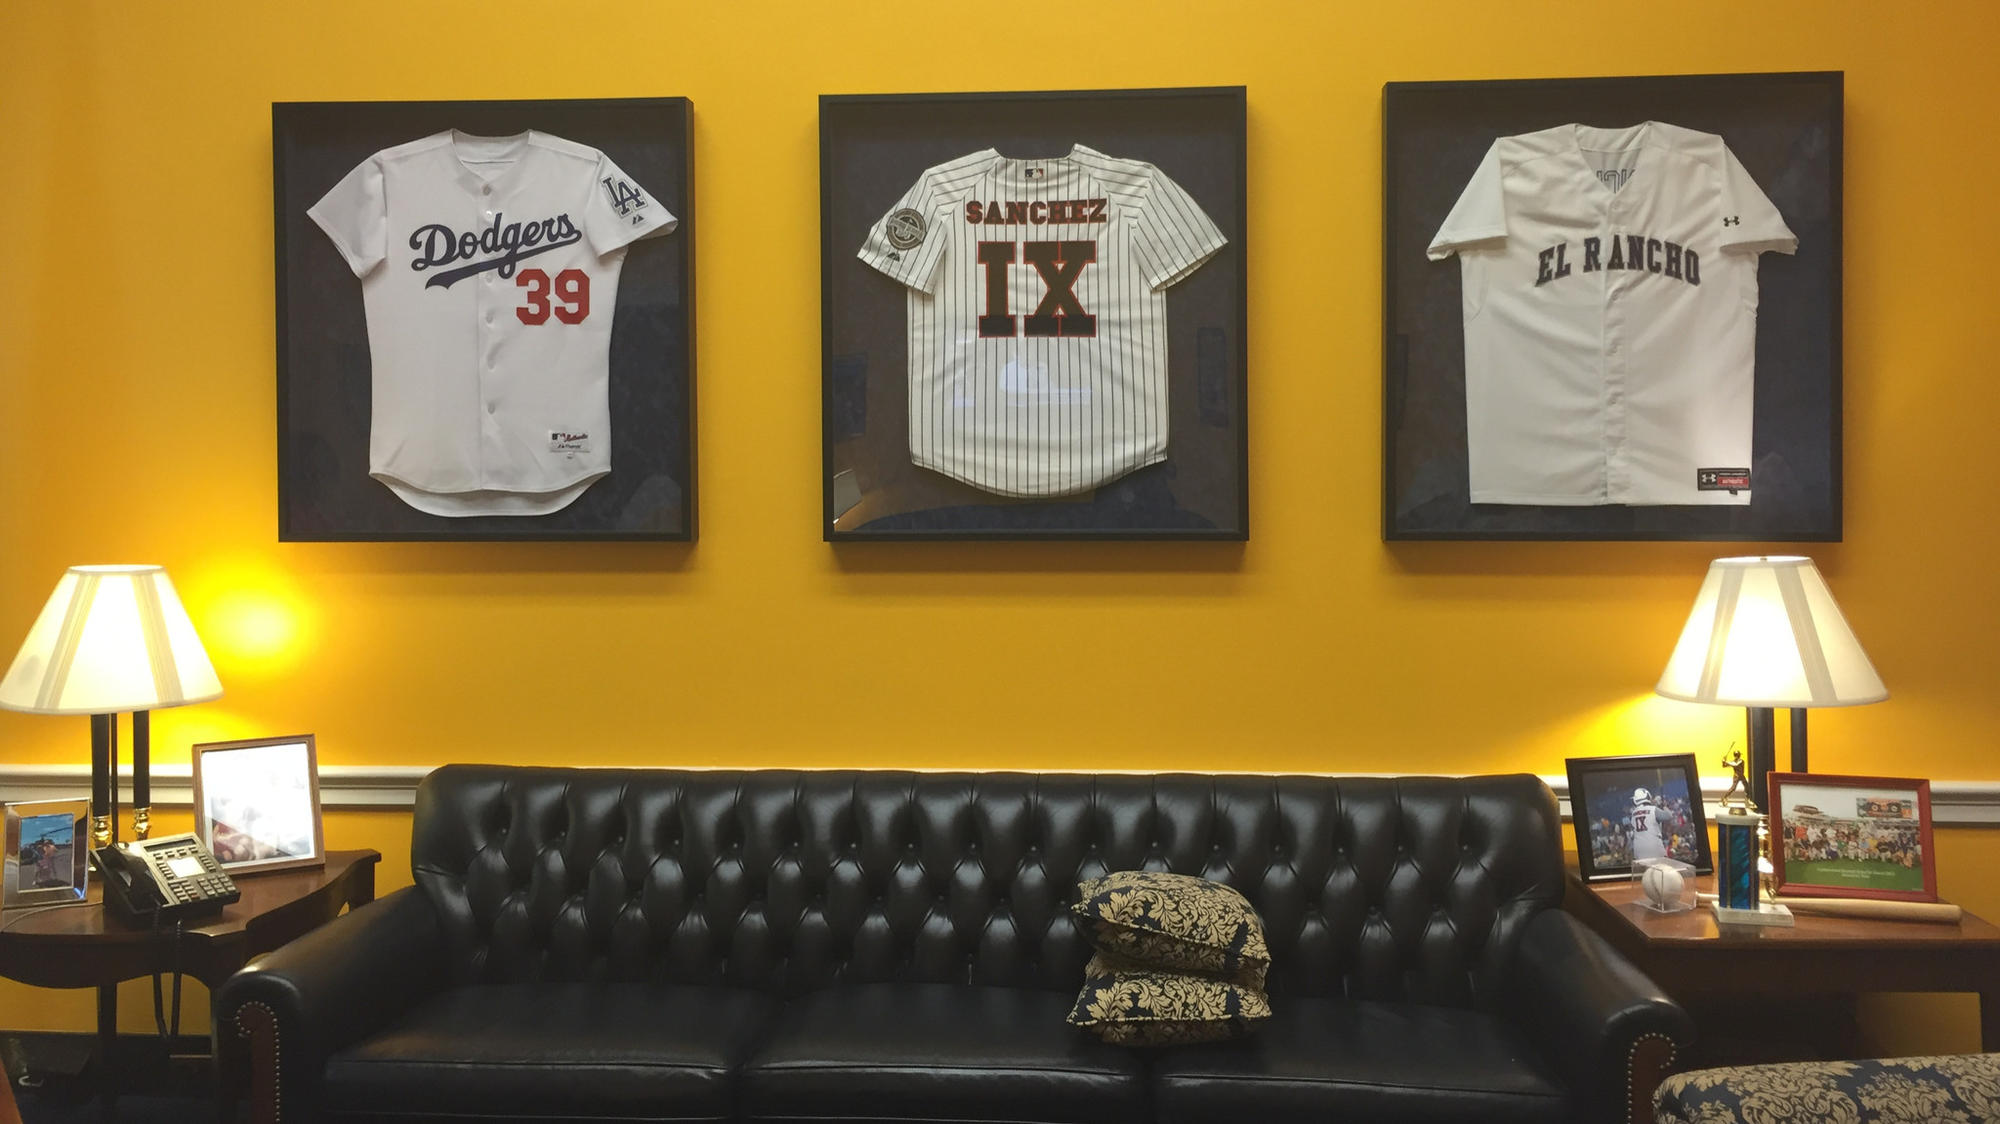 Some of Linda Sanchez's jerseys hang on her office wall.